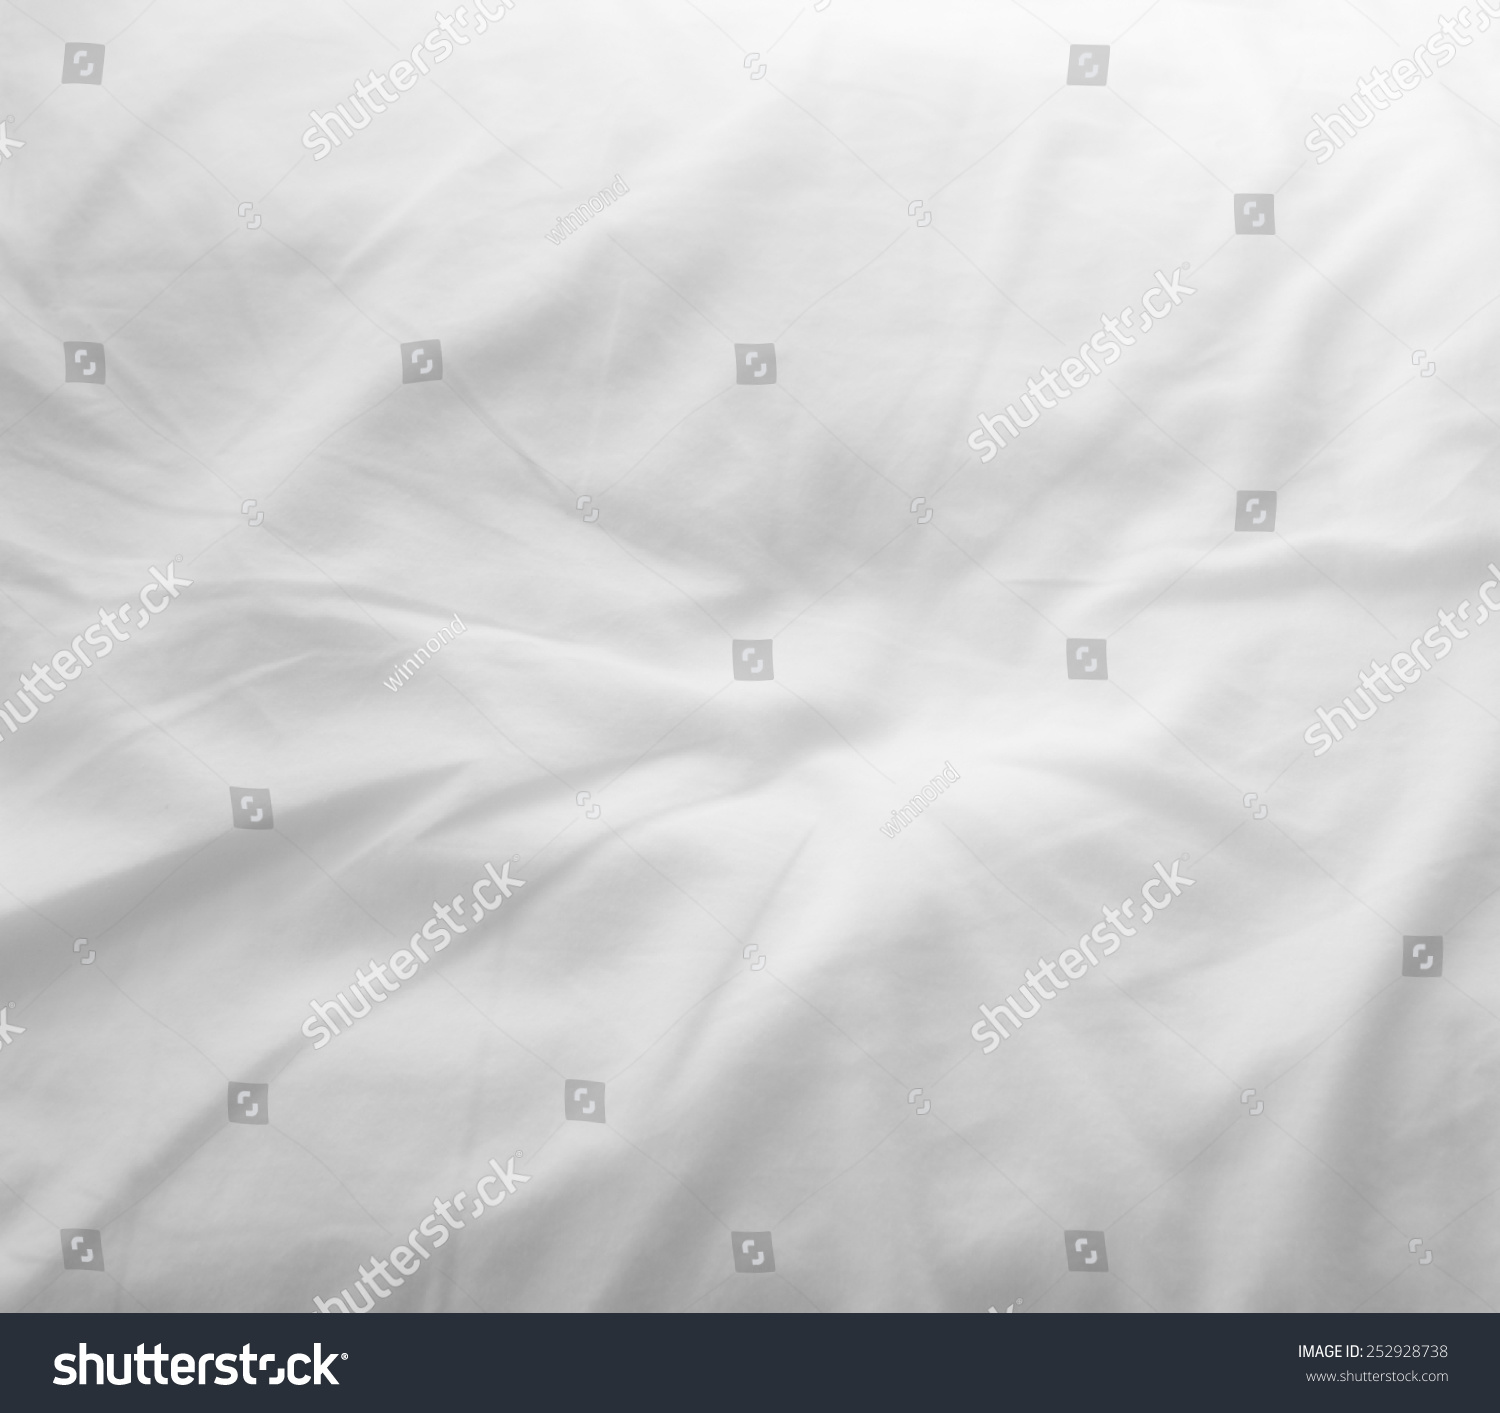 White bed sheet background - Soft White Bed Sheets Background